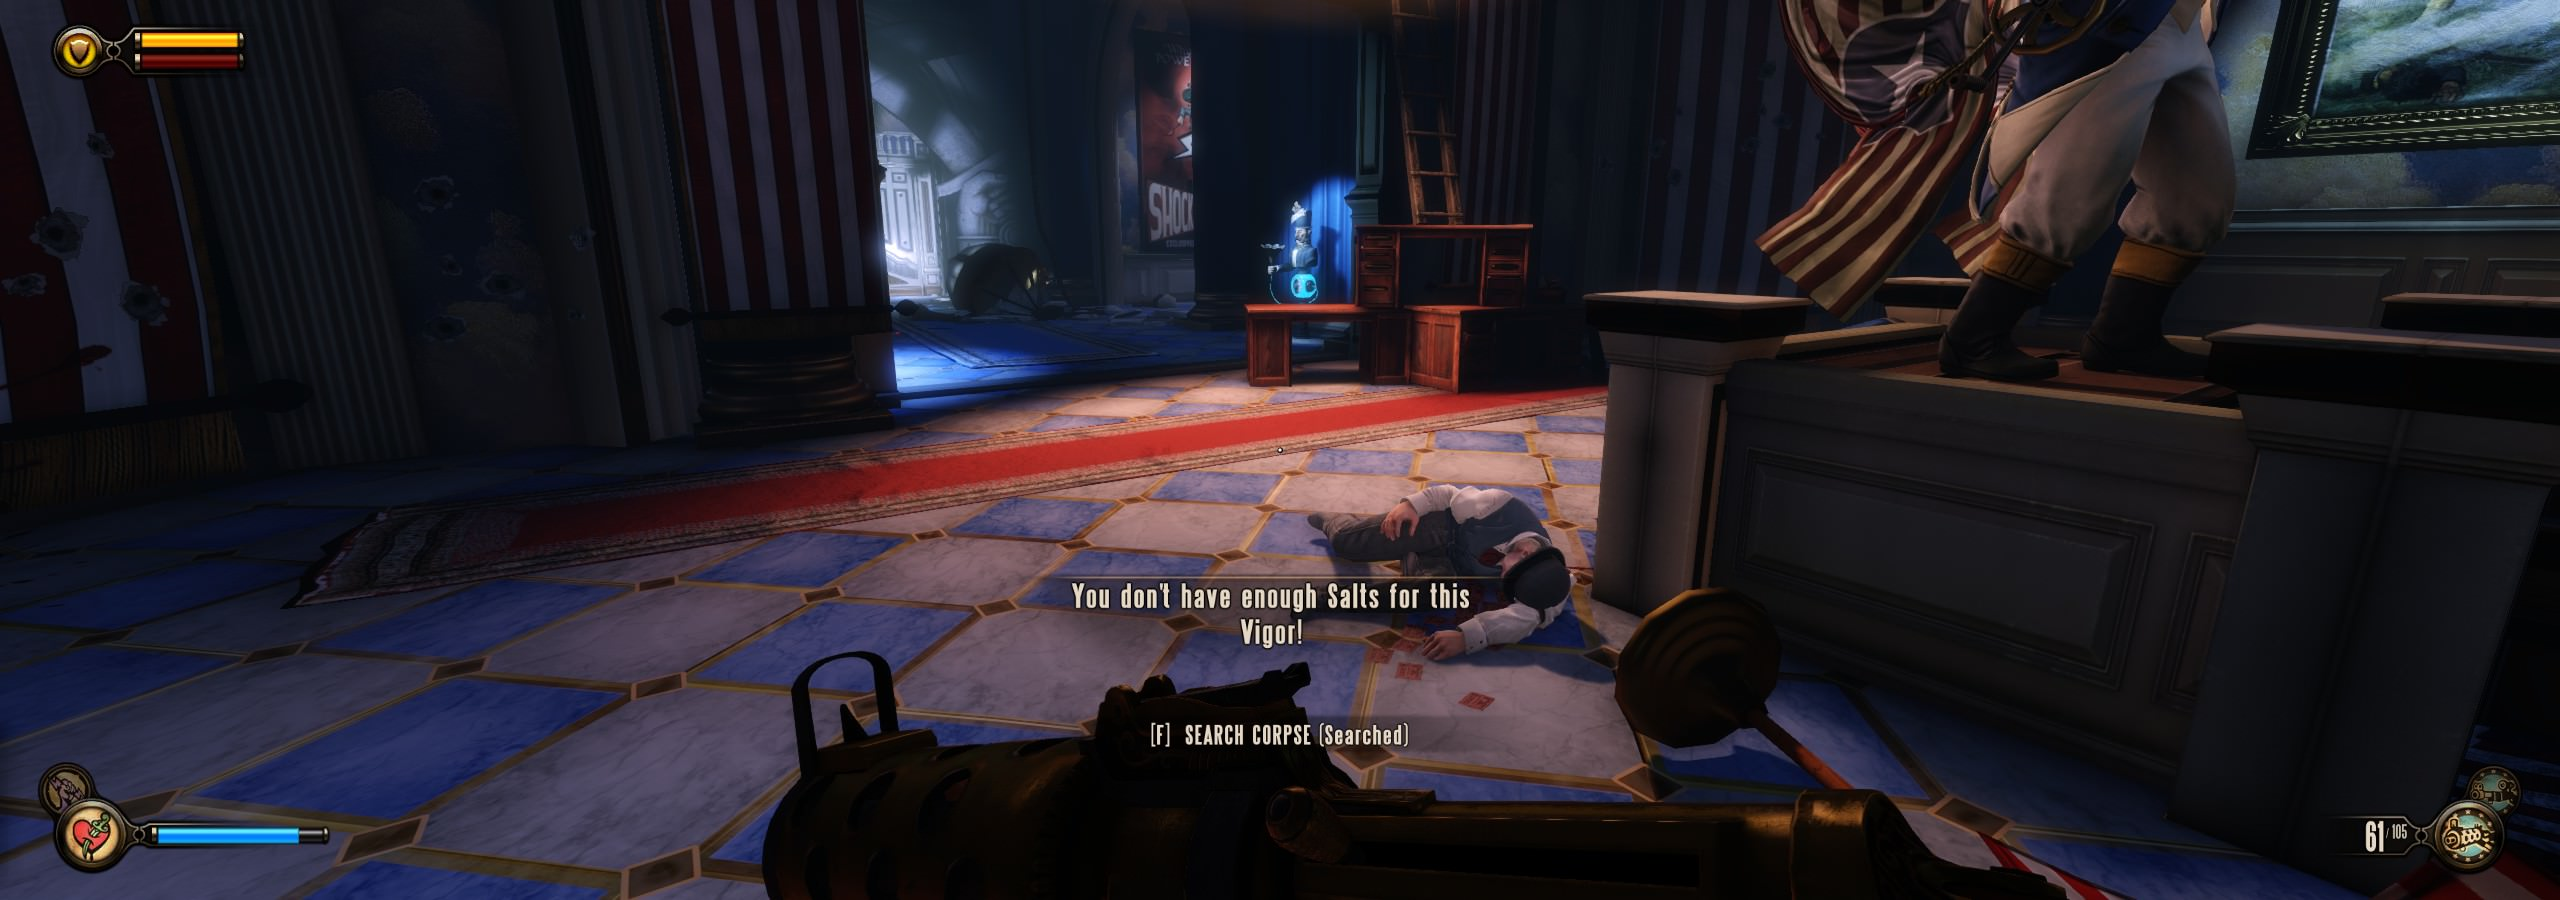 BioShock Infinite Cheats and Trainers for PC - WeMod